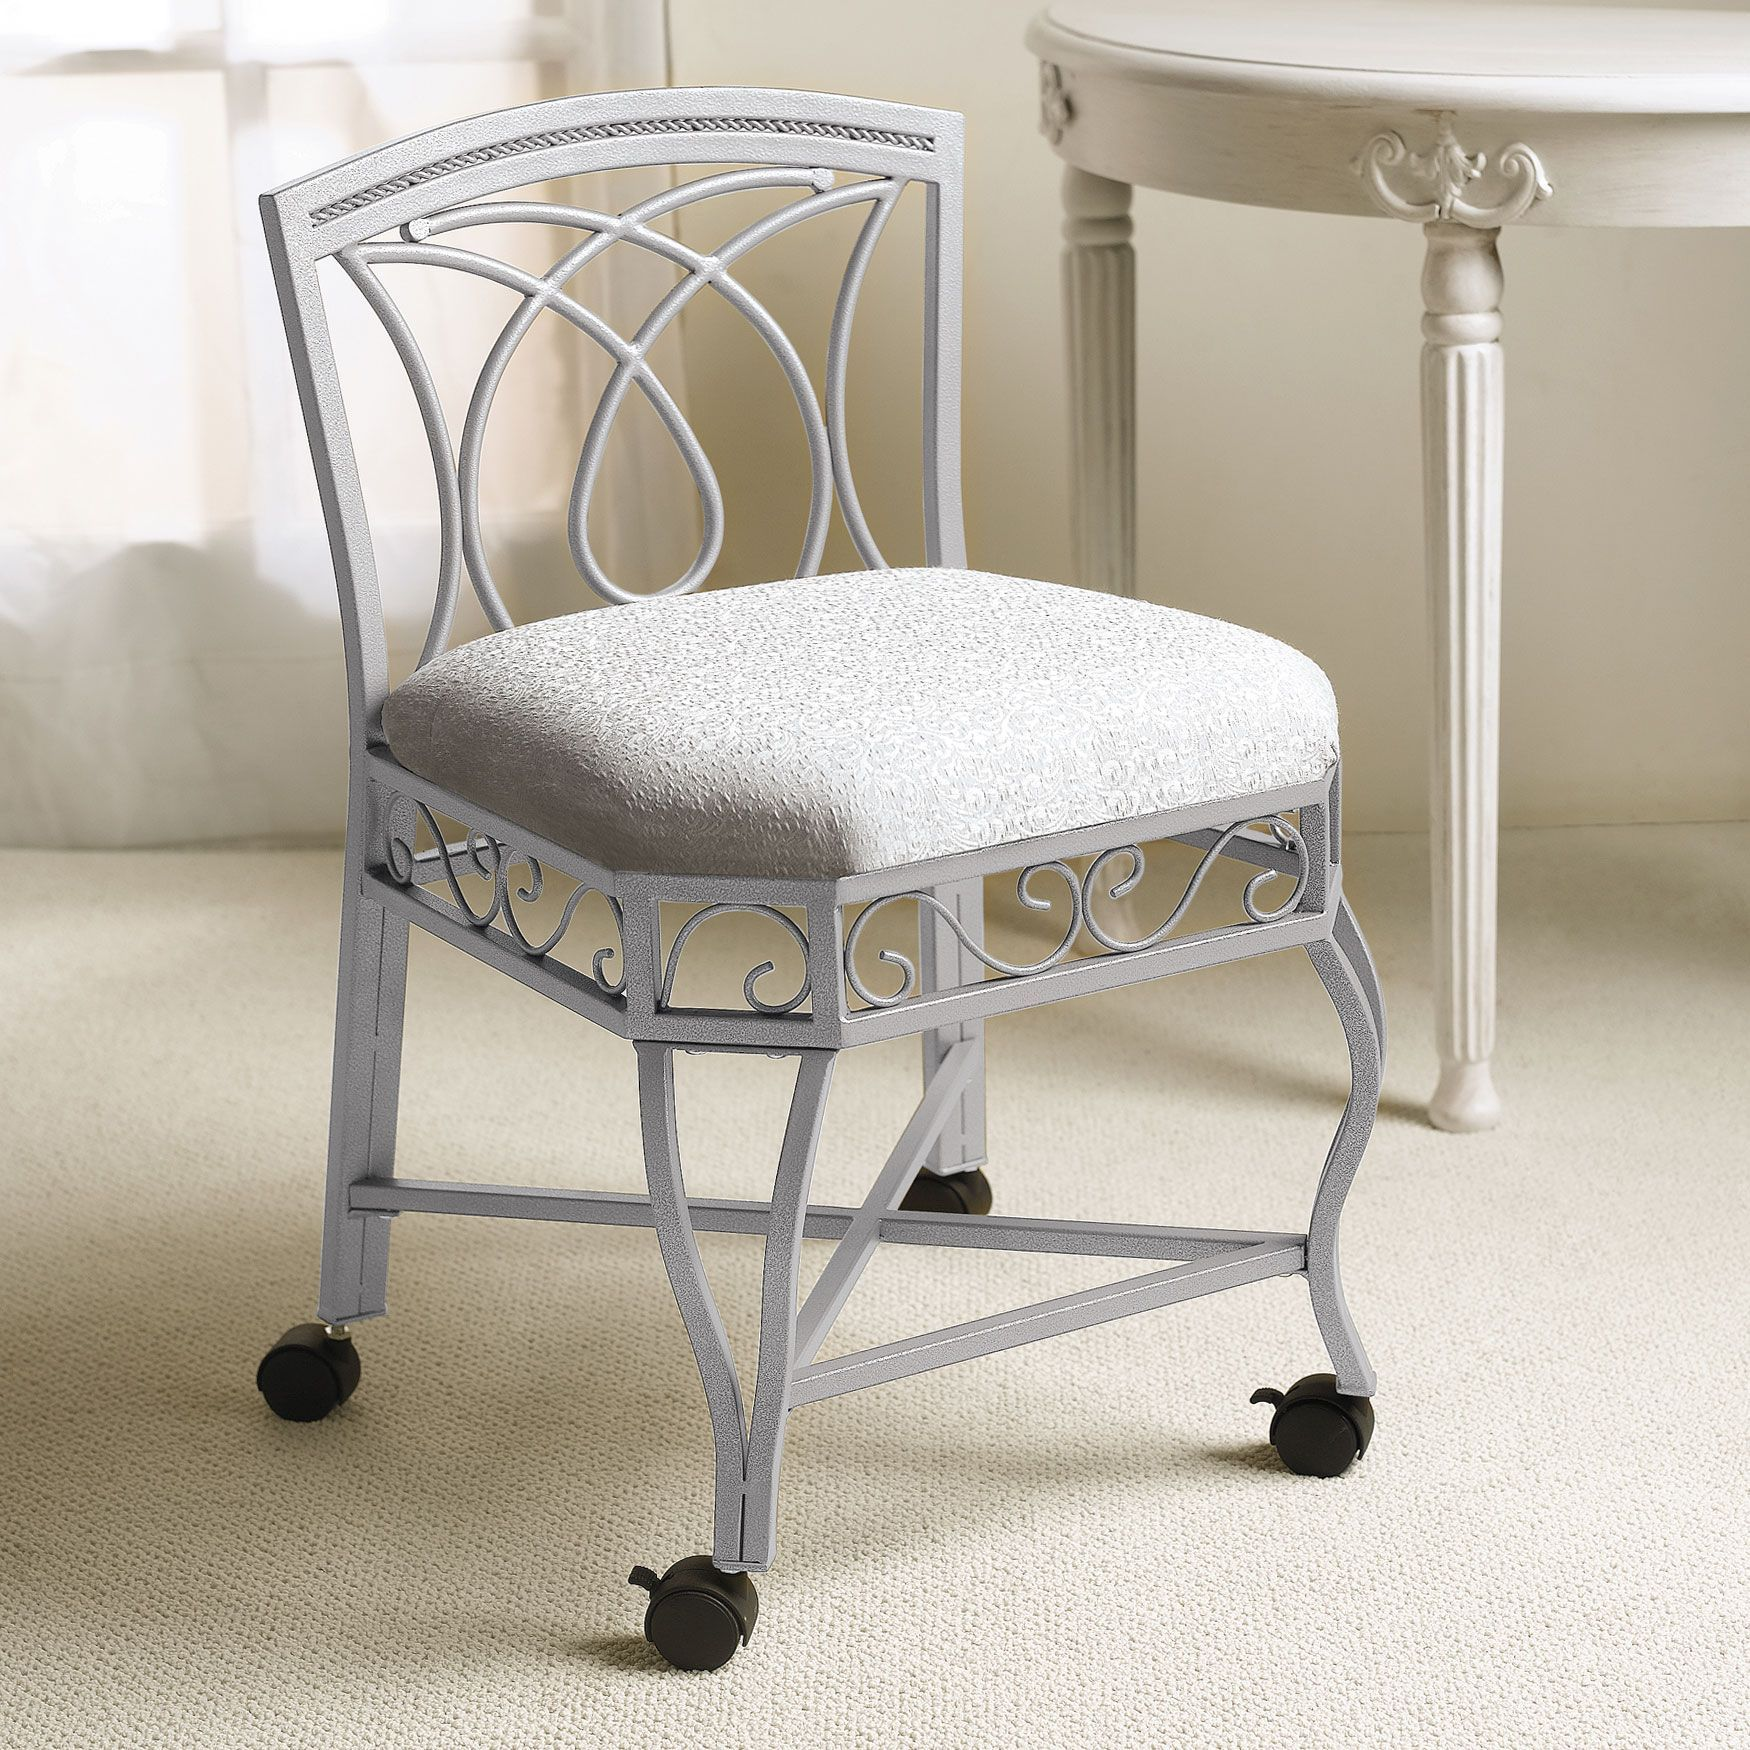 Elegant Bathroom Vanity Chairs di 12